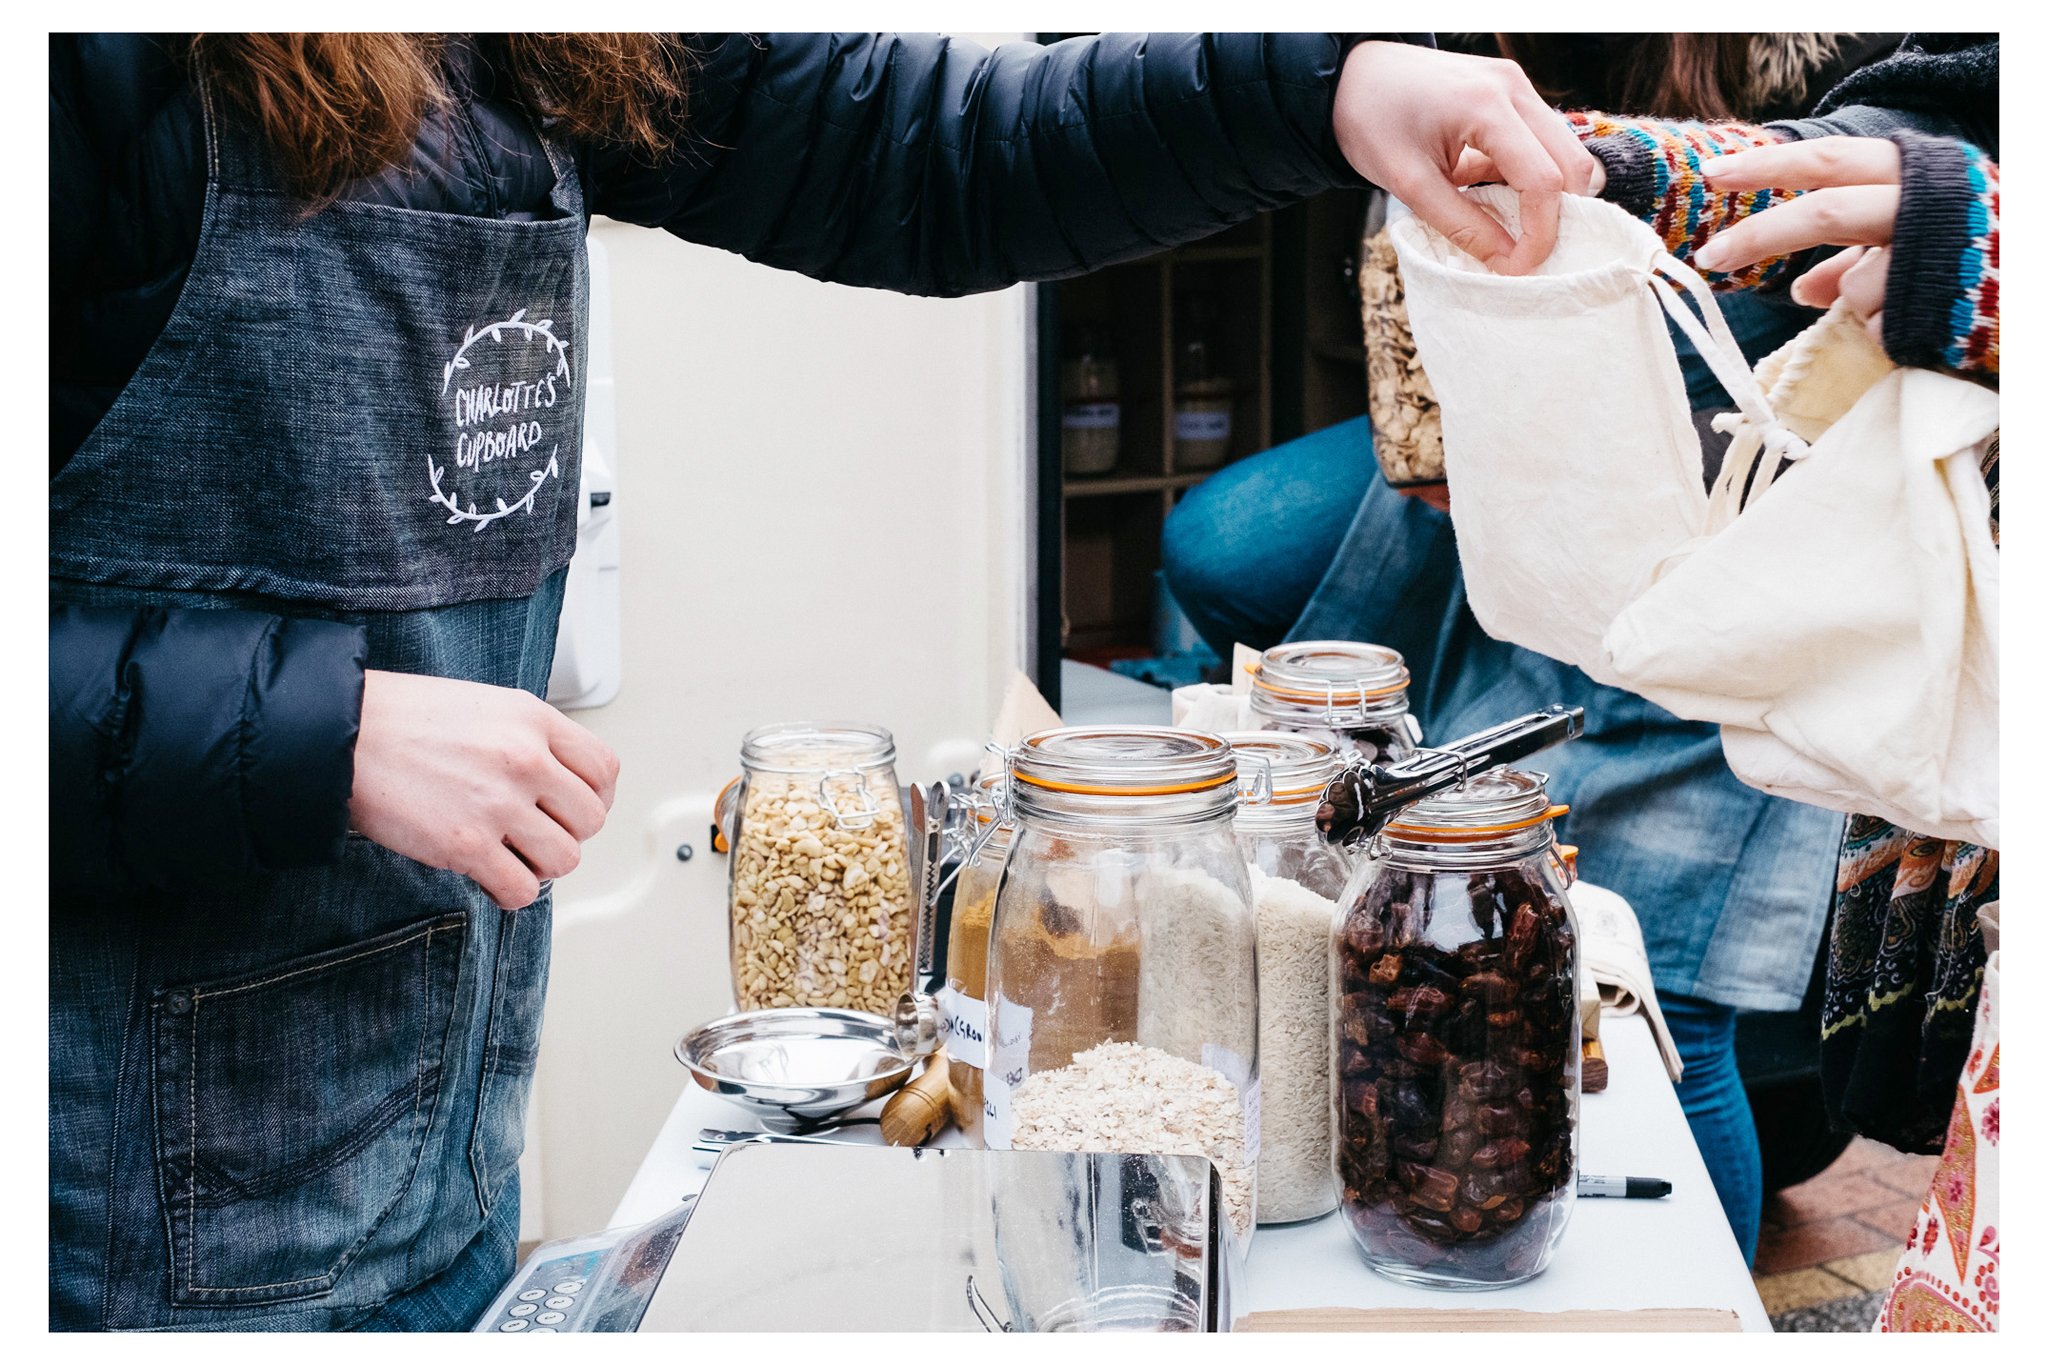 Charlotte's Cupboard is a packaging free venture in Sussex that offers home delivery or market days. You bring your own containers and pay only for the food!